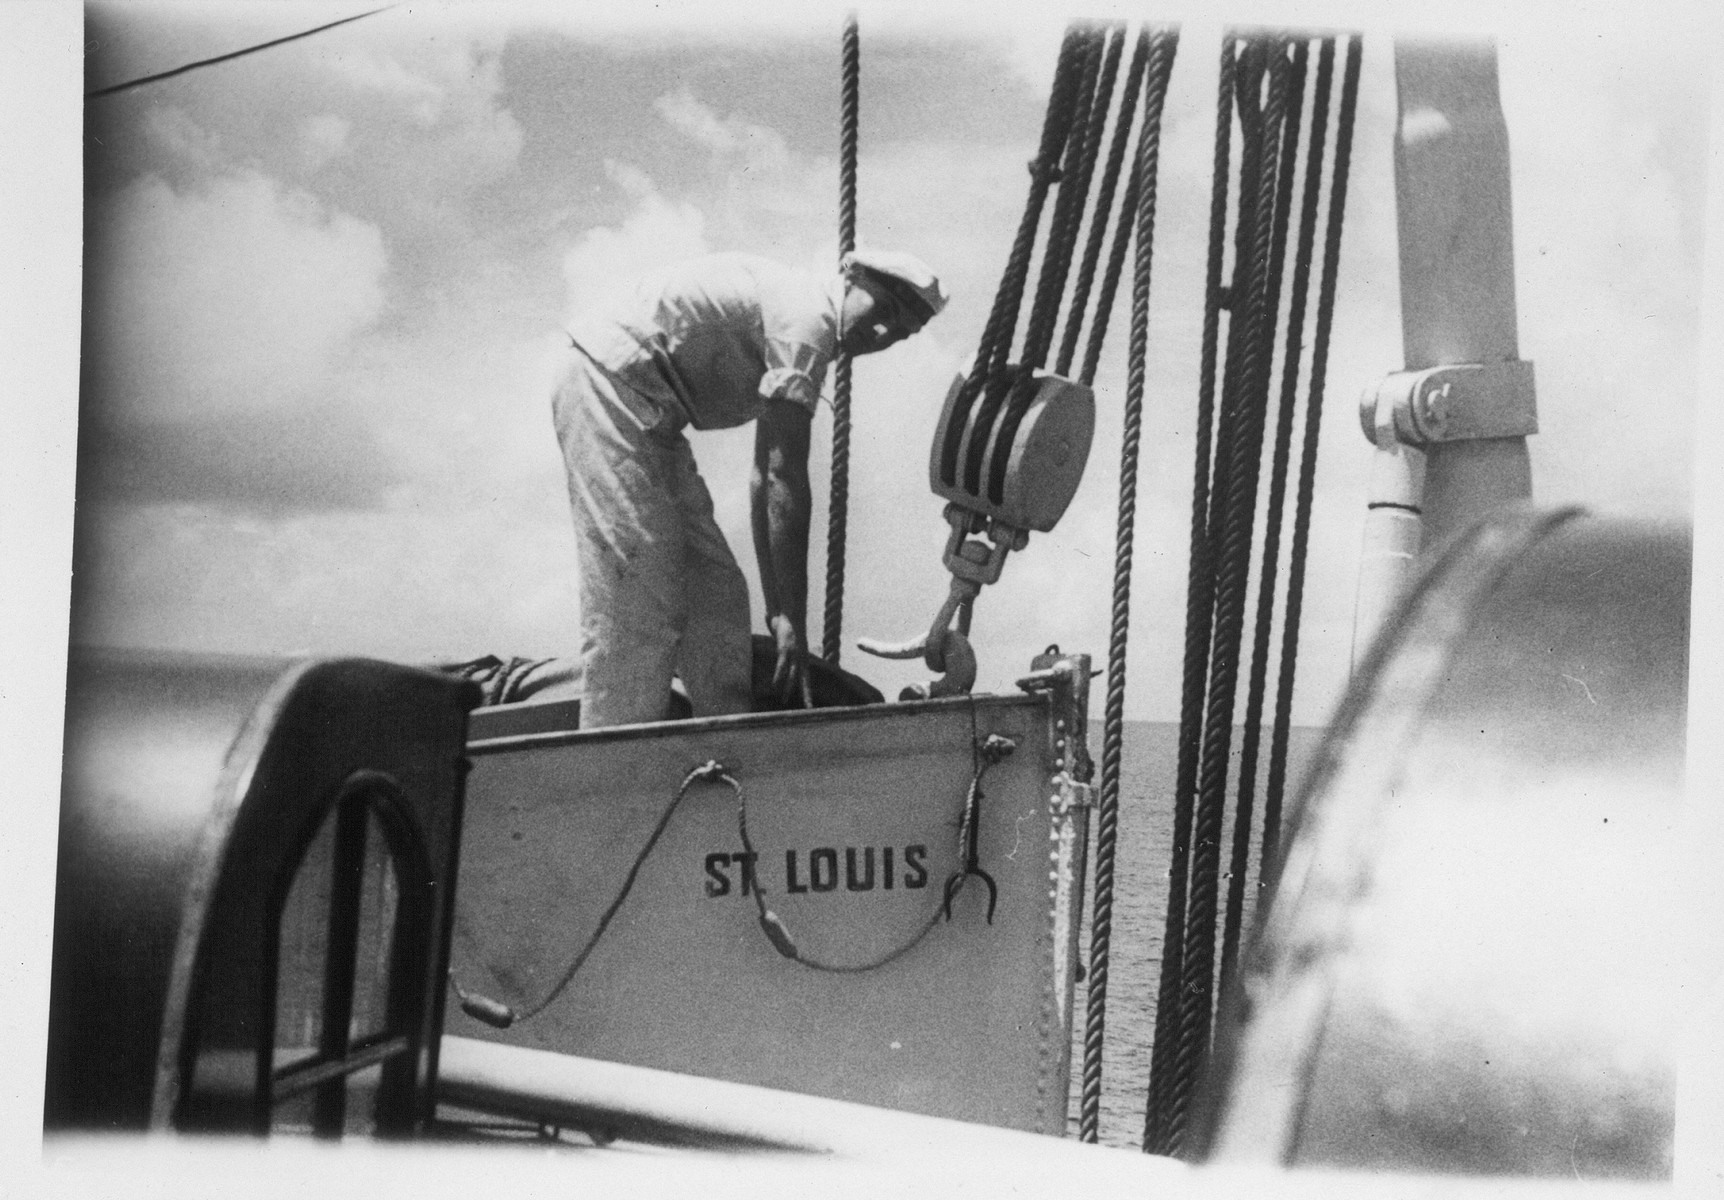 A crew member stows equipment in a lifeboat on the MS St. Louis.